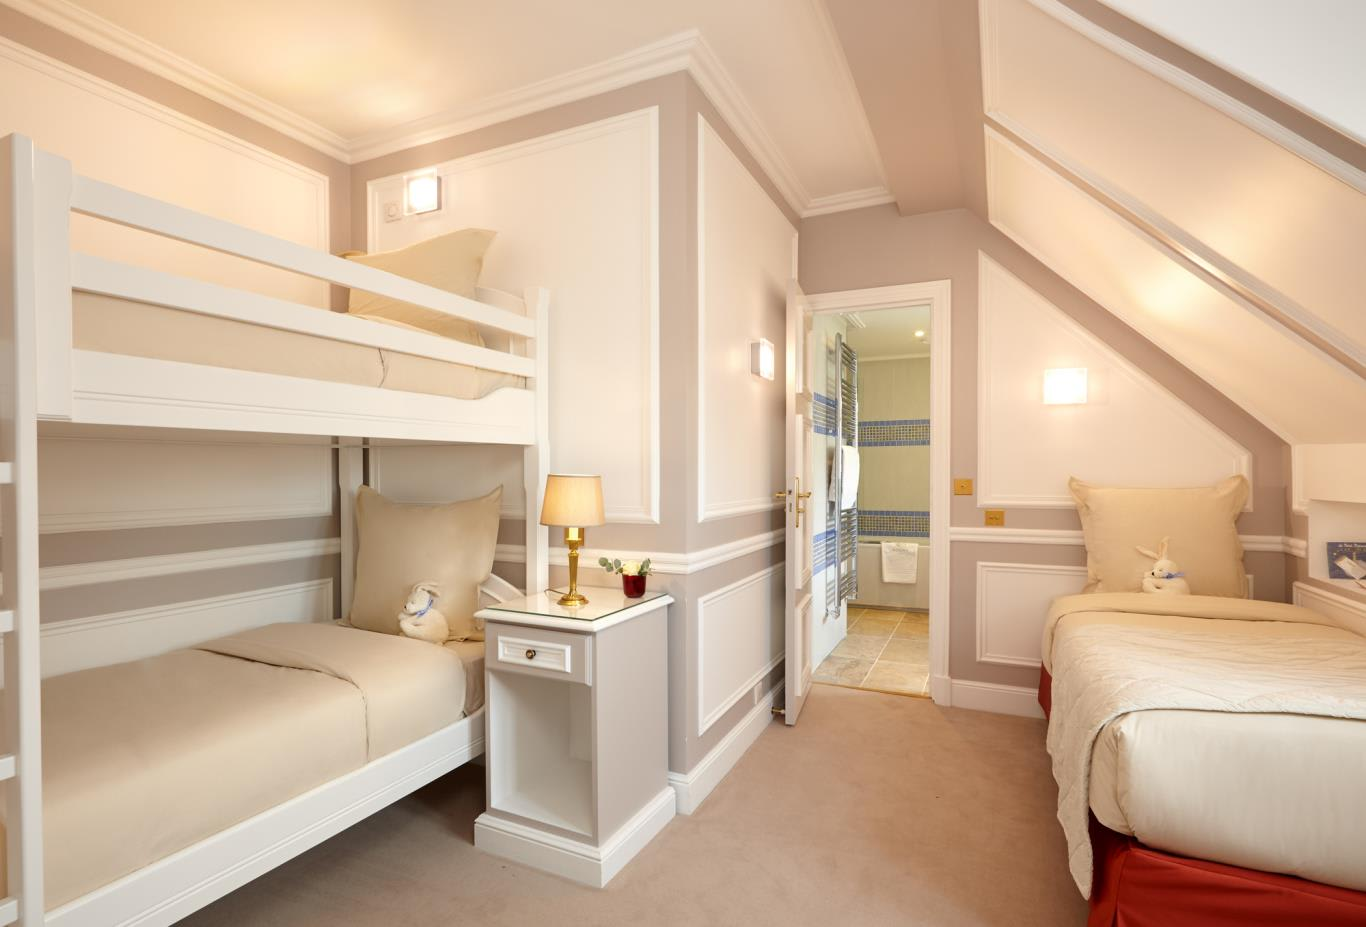 Family Suite bunkbeds